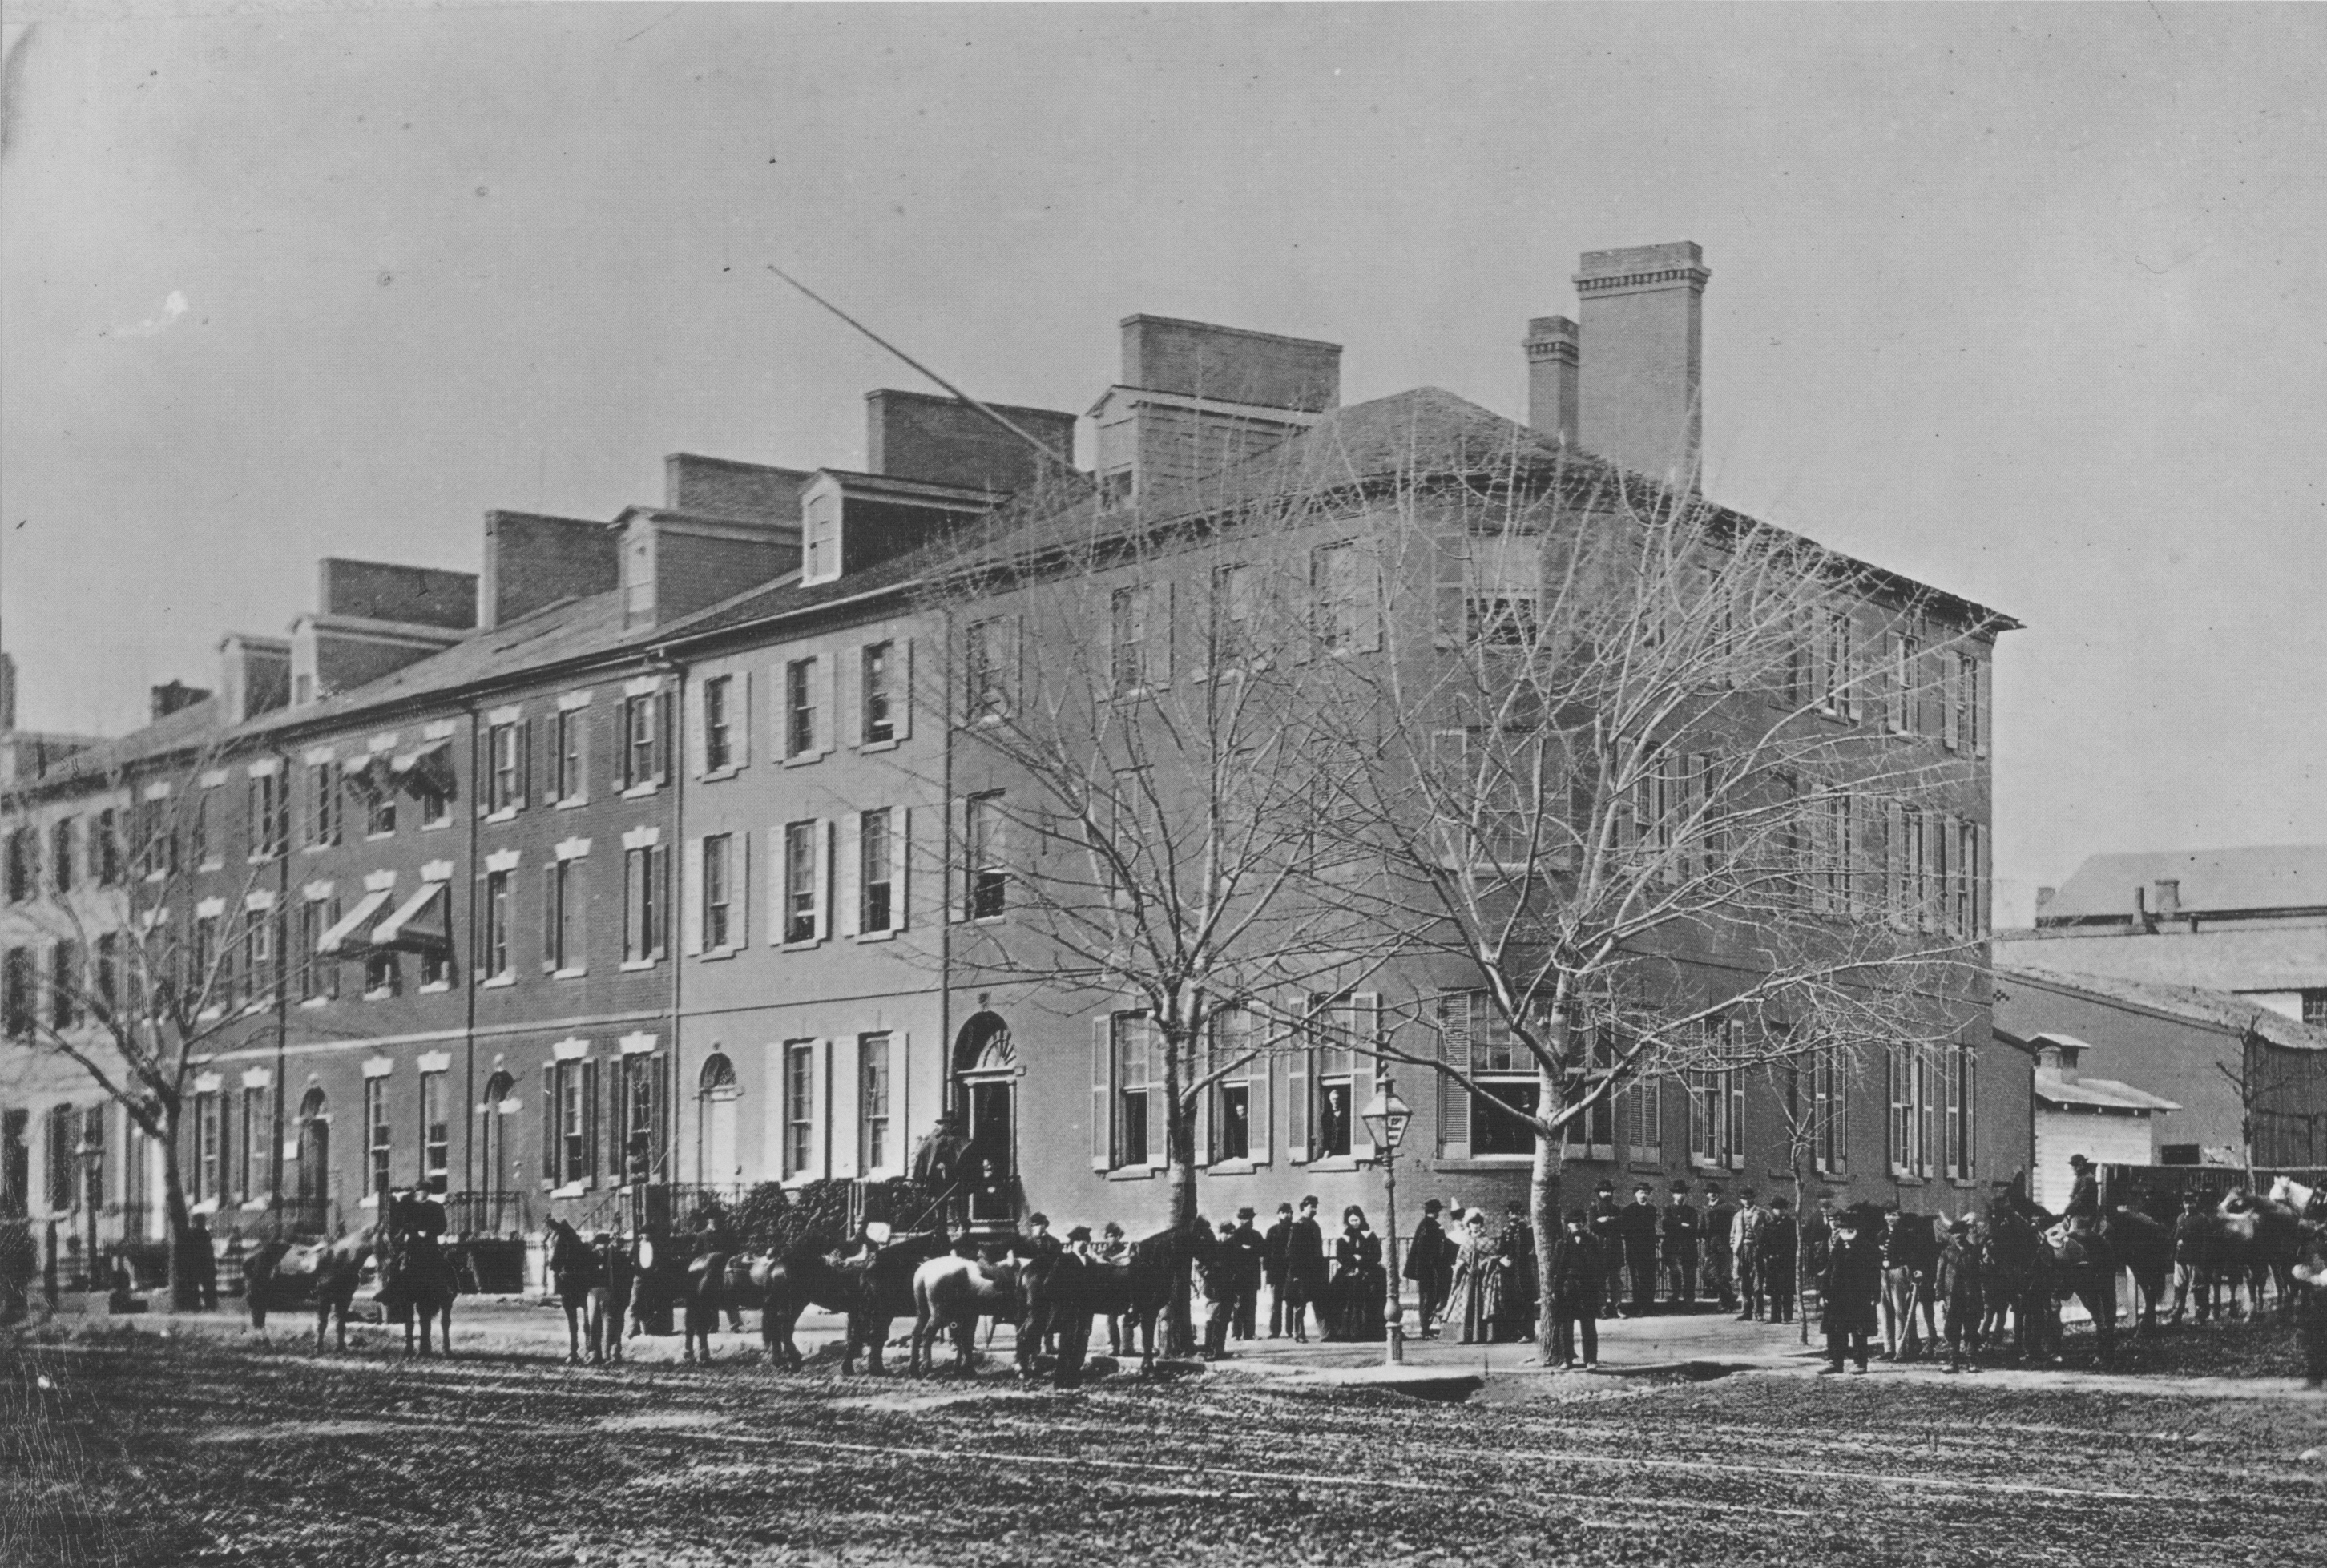 File:Seven Buildings - Washington DC - 1865.JPG